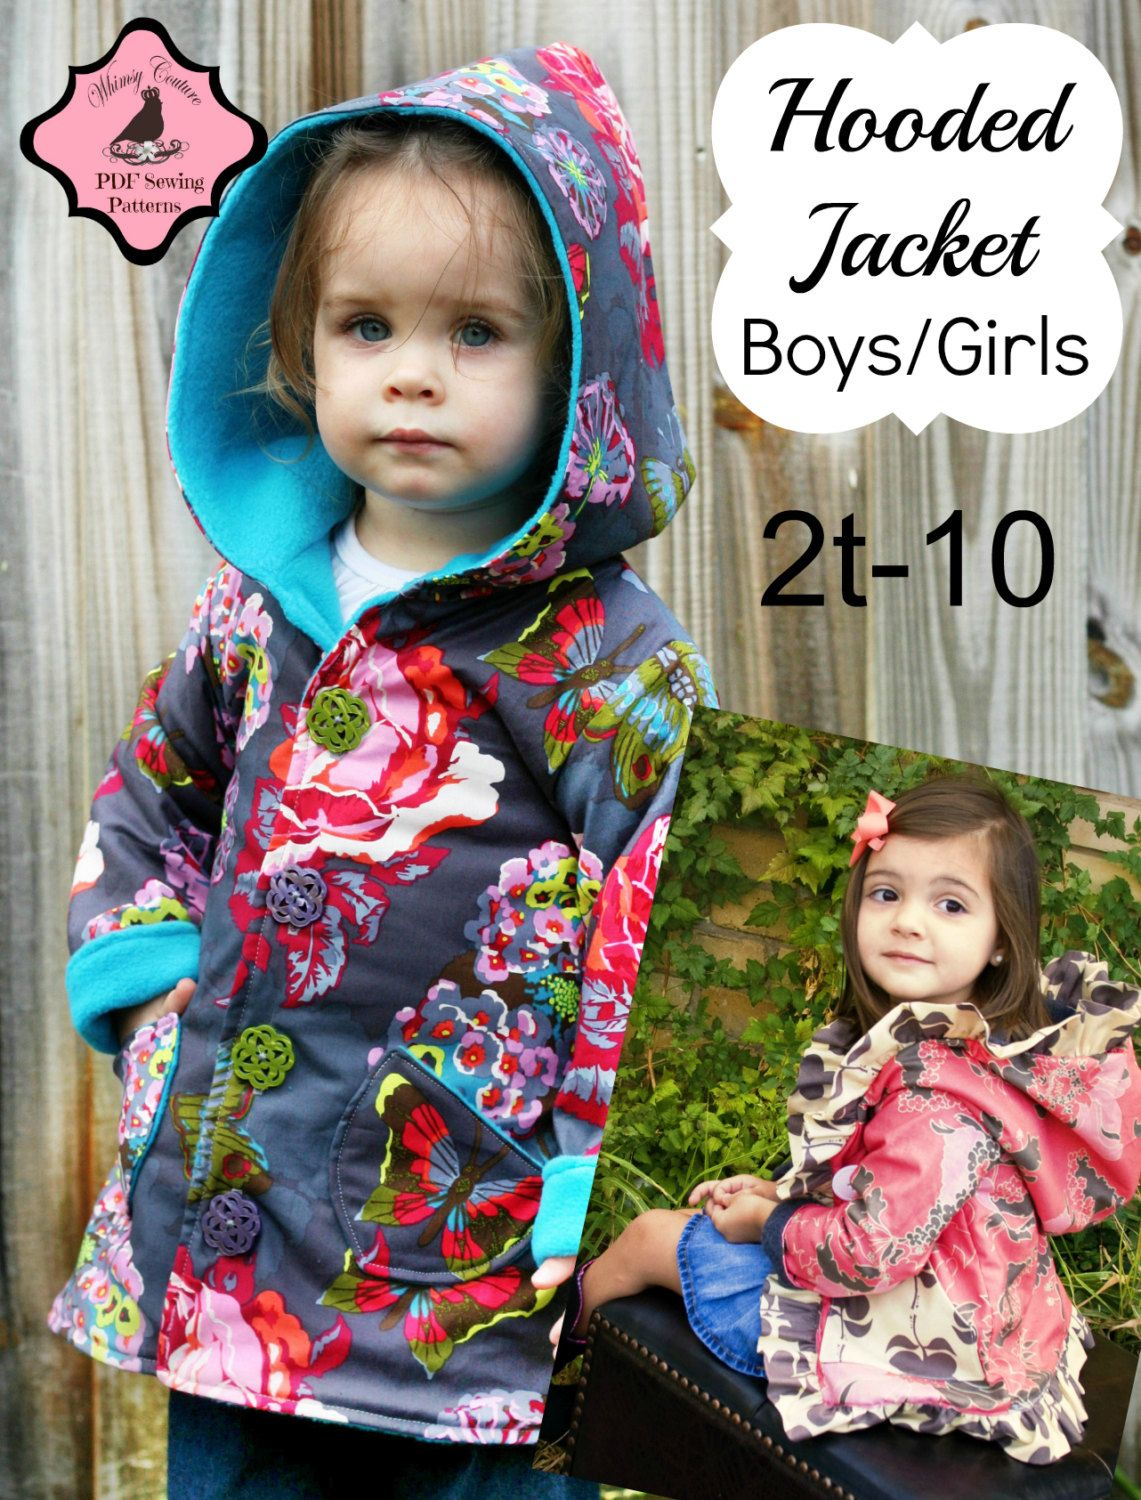 On Sale 40% Off Hooded Jacket Boys Girls Whimsy Couture Sewing ...